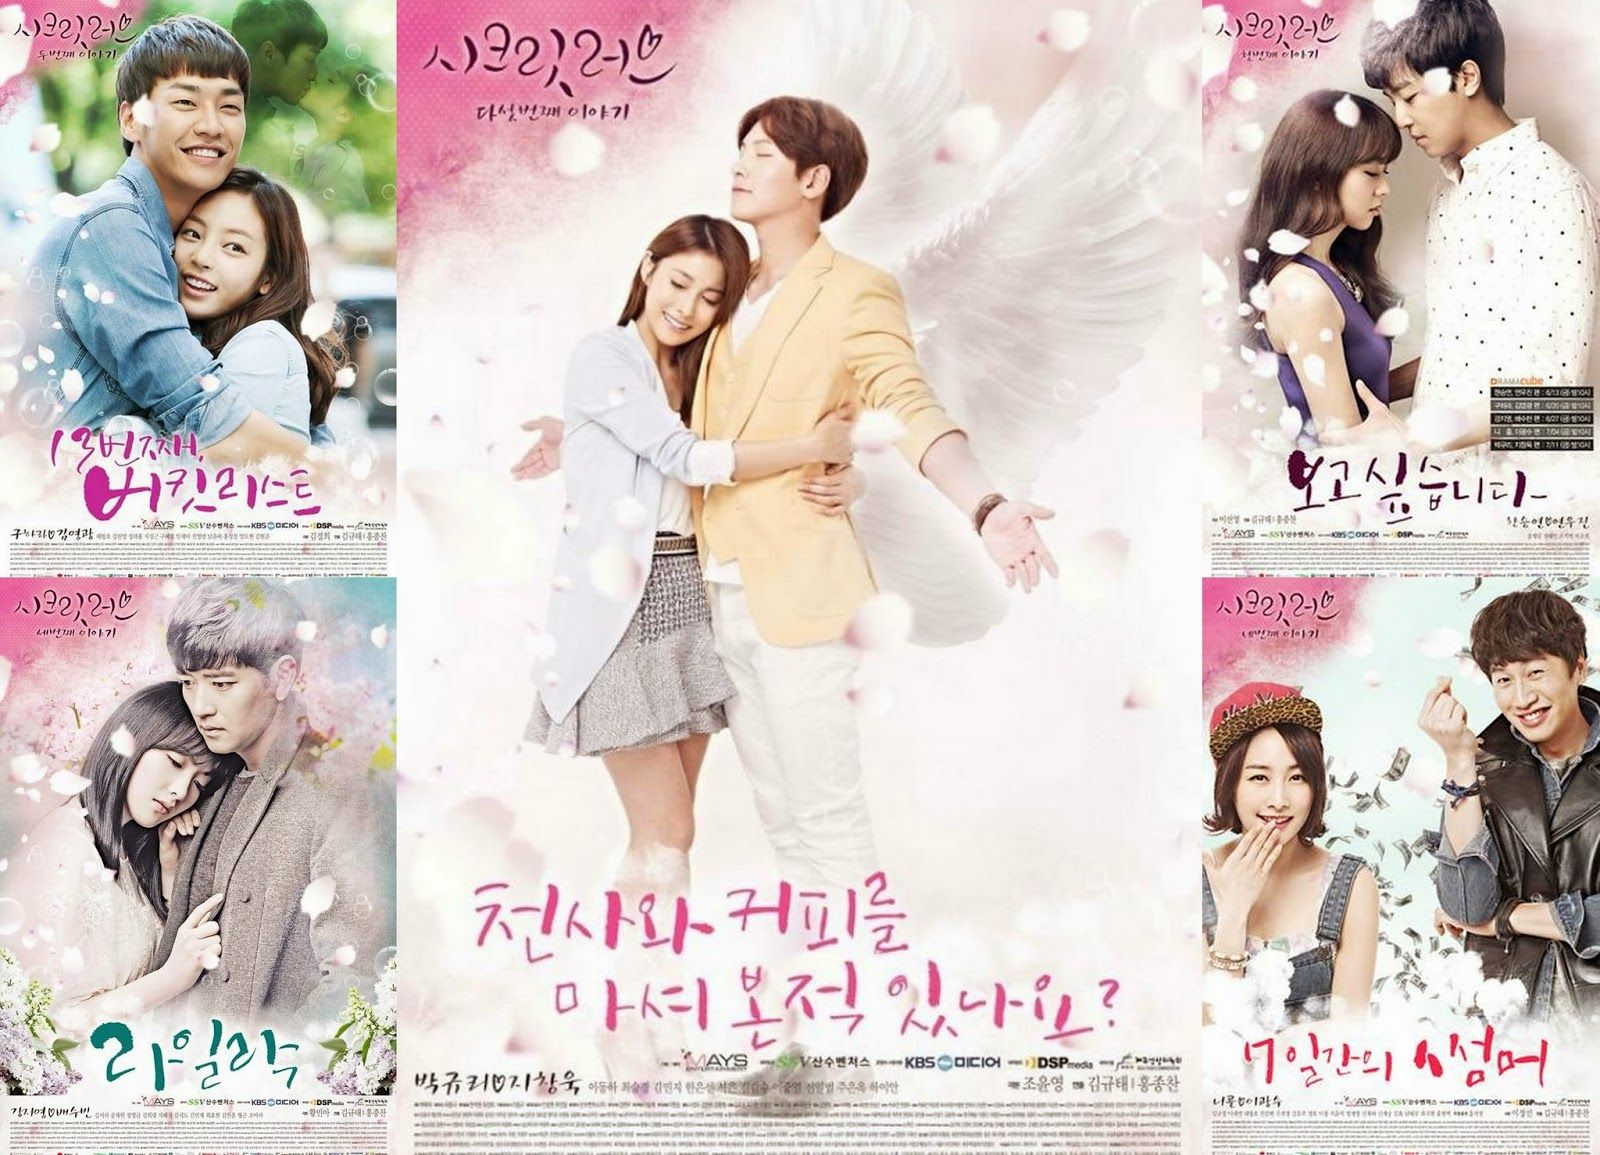 Kara S Secret Love Korean Series Of Drama Specials 2014 Starring All Members Of Kara And Featuring Ji Chang Wook Kim Y Kara Secret Love Secret Love Drama